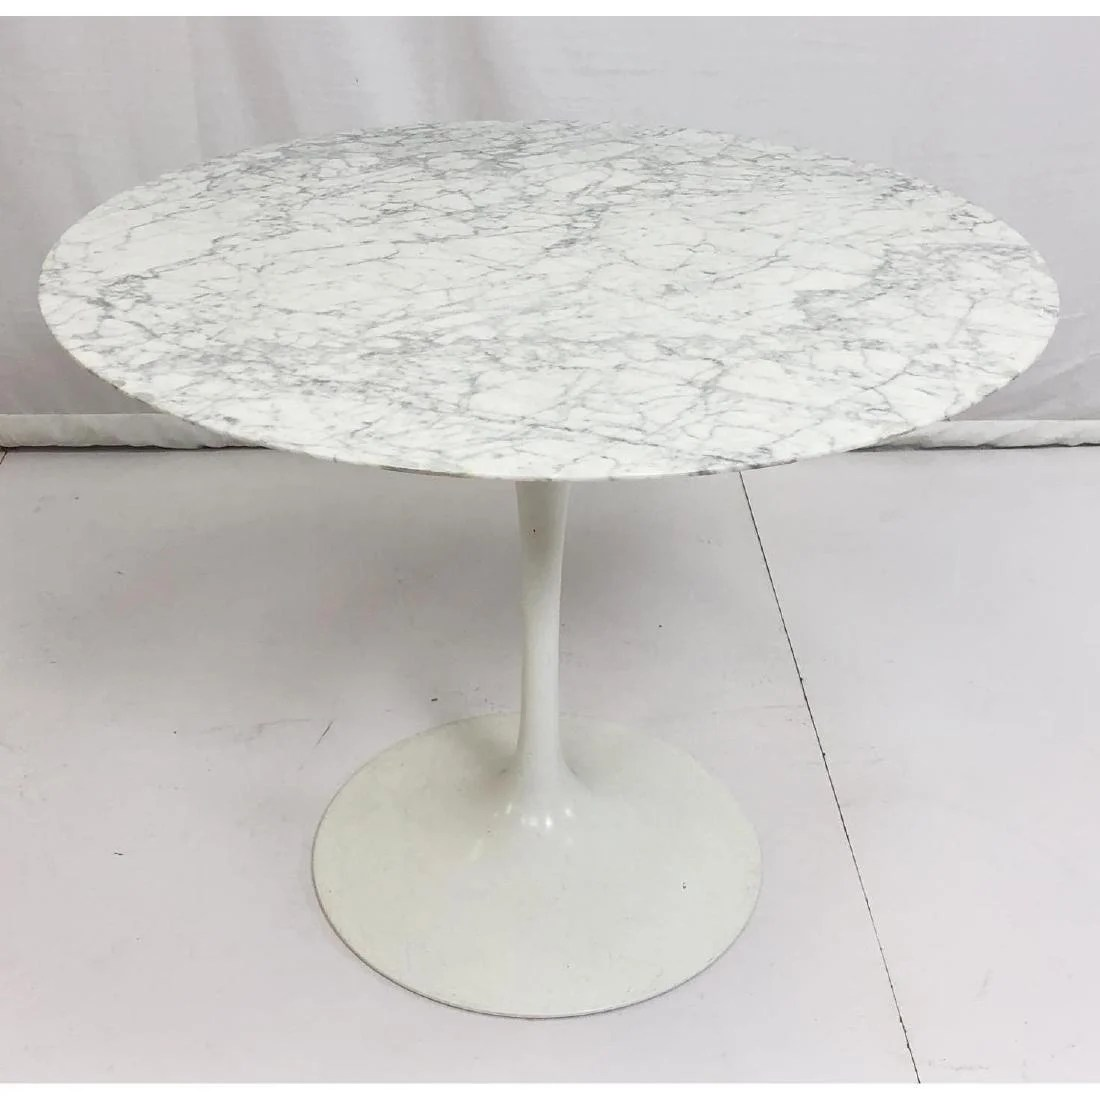 Knoll Table Eero Saarinen For Knoll Marble Top Dining Table On Liveauctioneers